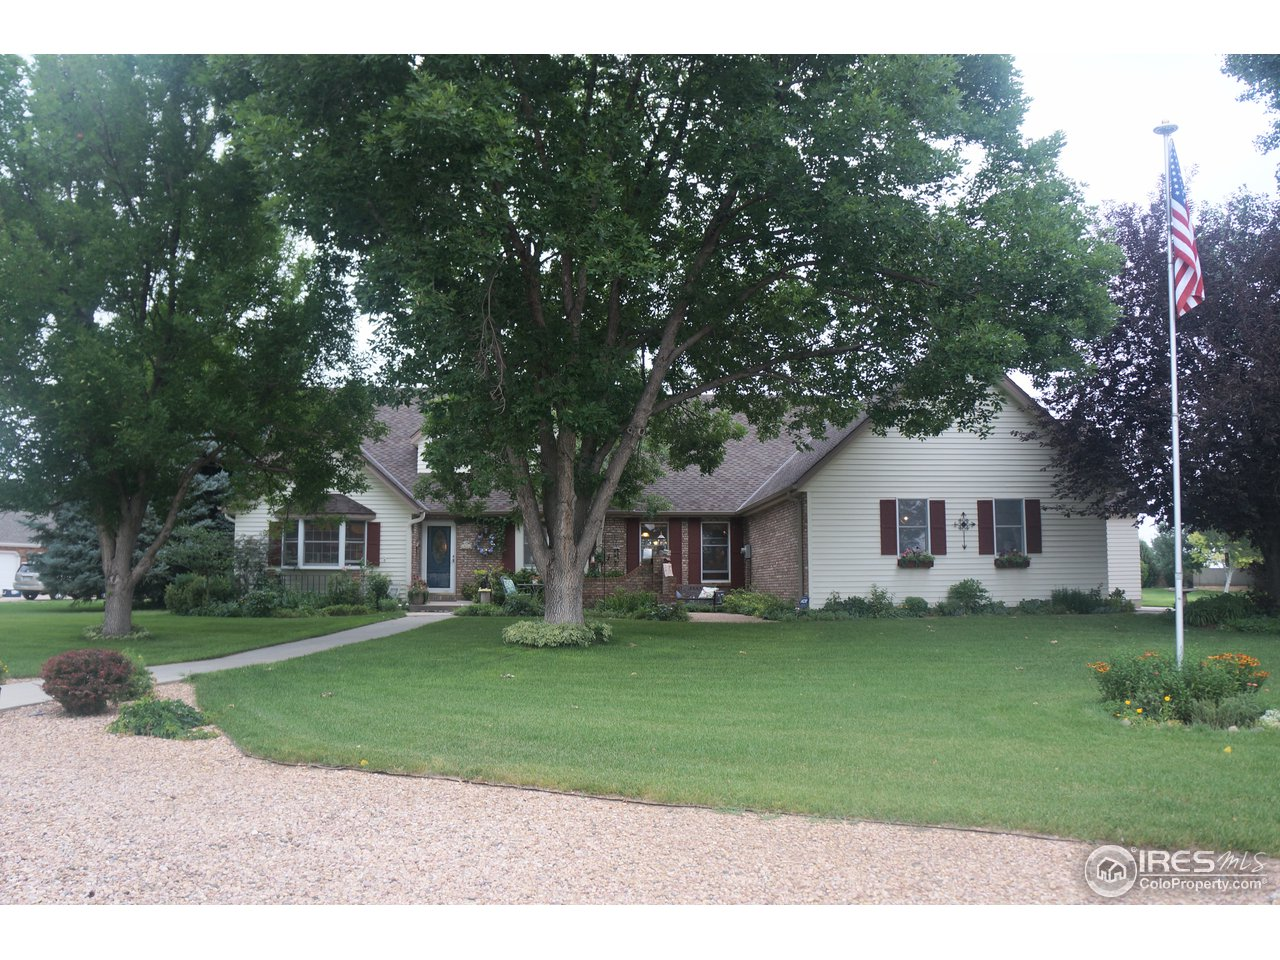 1626 N 35th Ave Ct, Greeley CO 80631